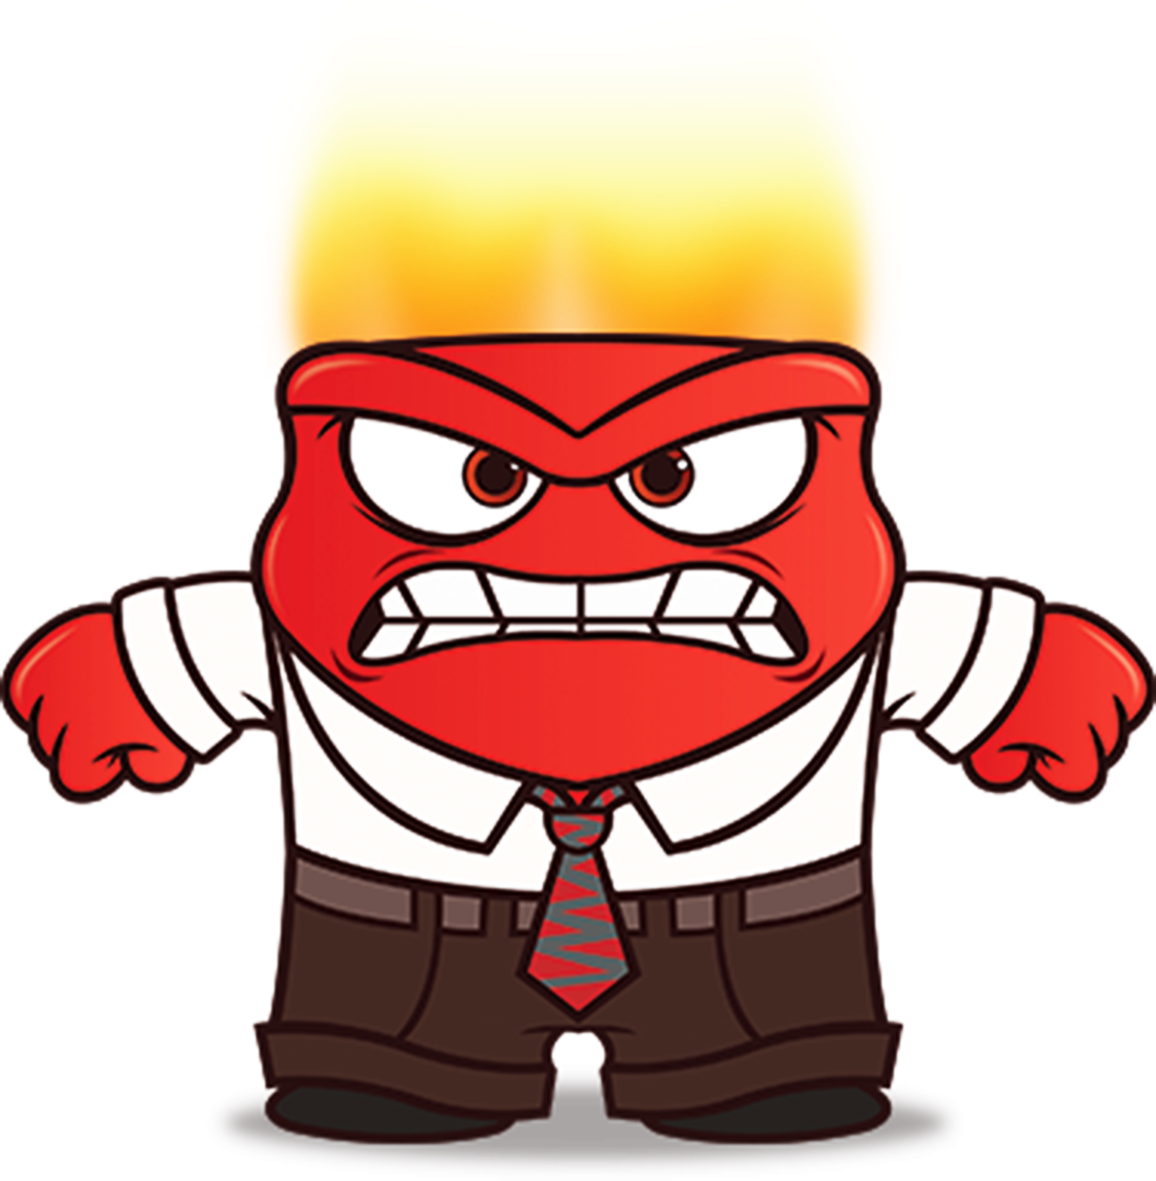 3005 Inside Out Anger Clip Art , Height 8 cm, decal sticker.